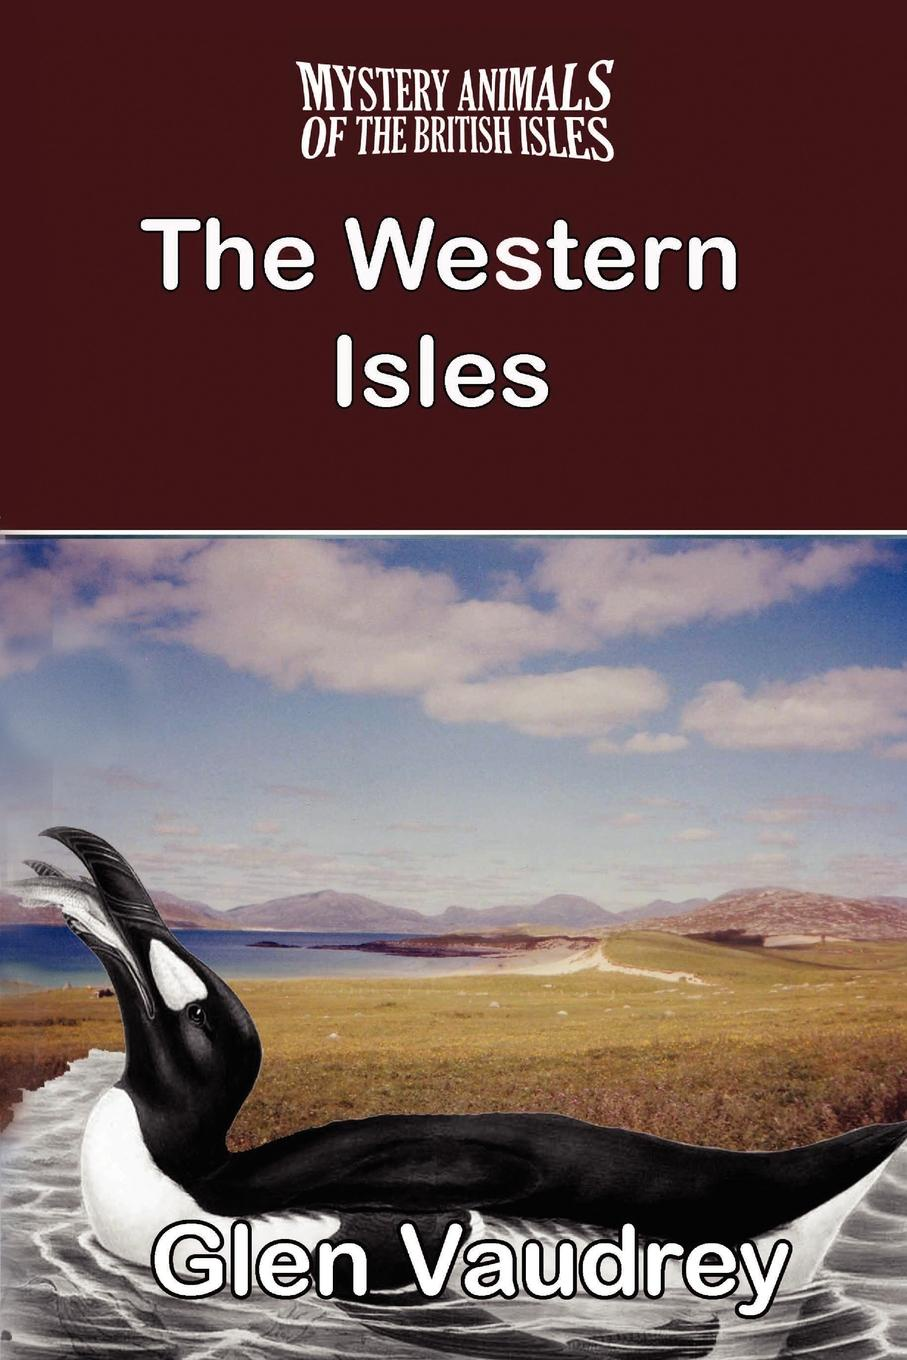 Glen Vaudrey THE MYSTERY ANIMALS OF THE BRITISH ISLES. The Western Isles the british isles cd